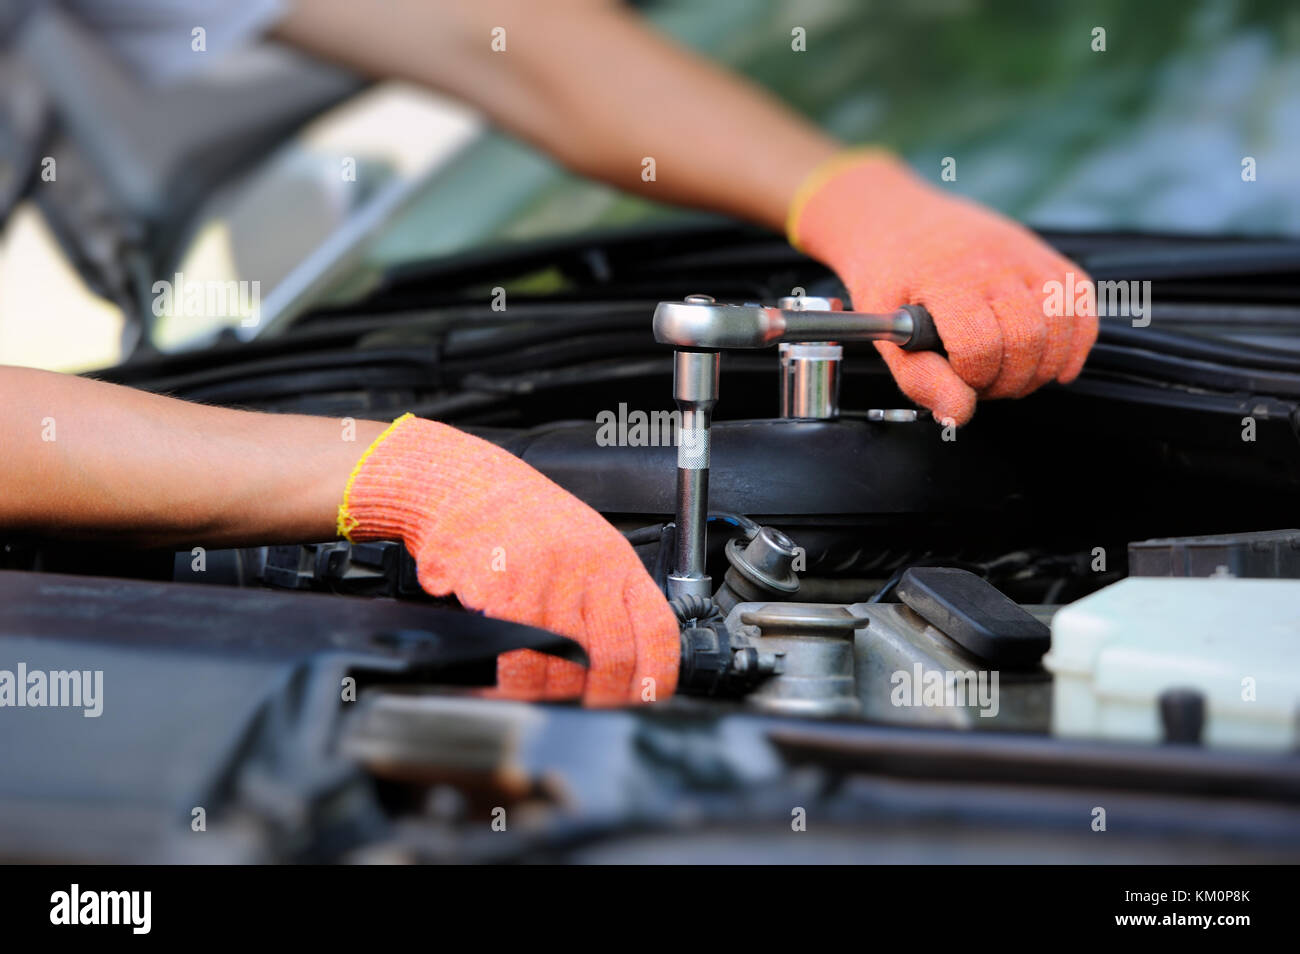 Hands of car mechanic in auto repair service - Stock Image